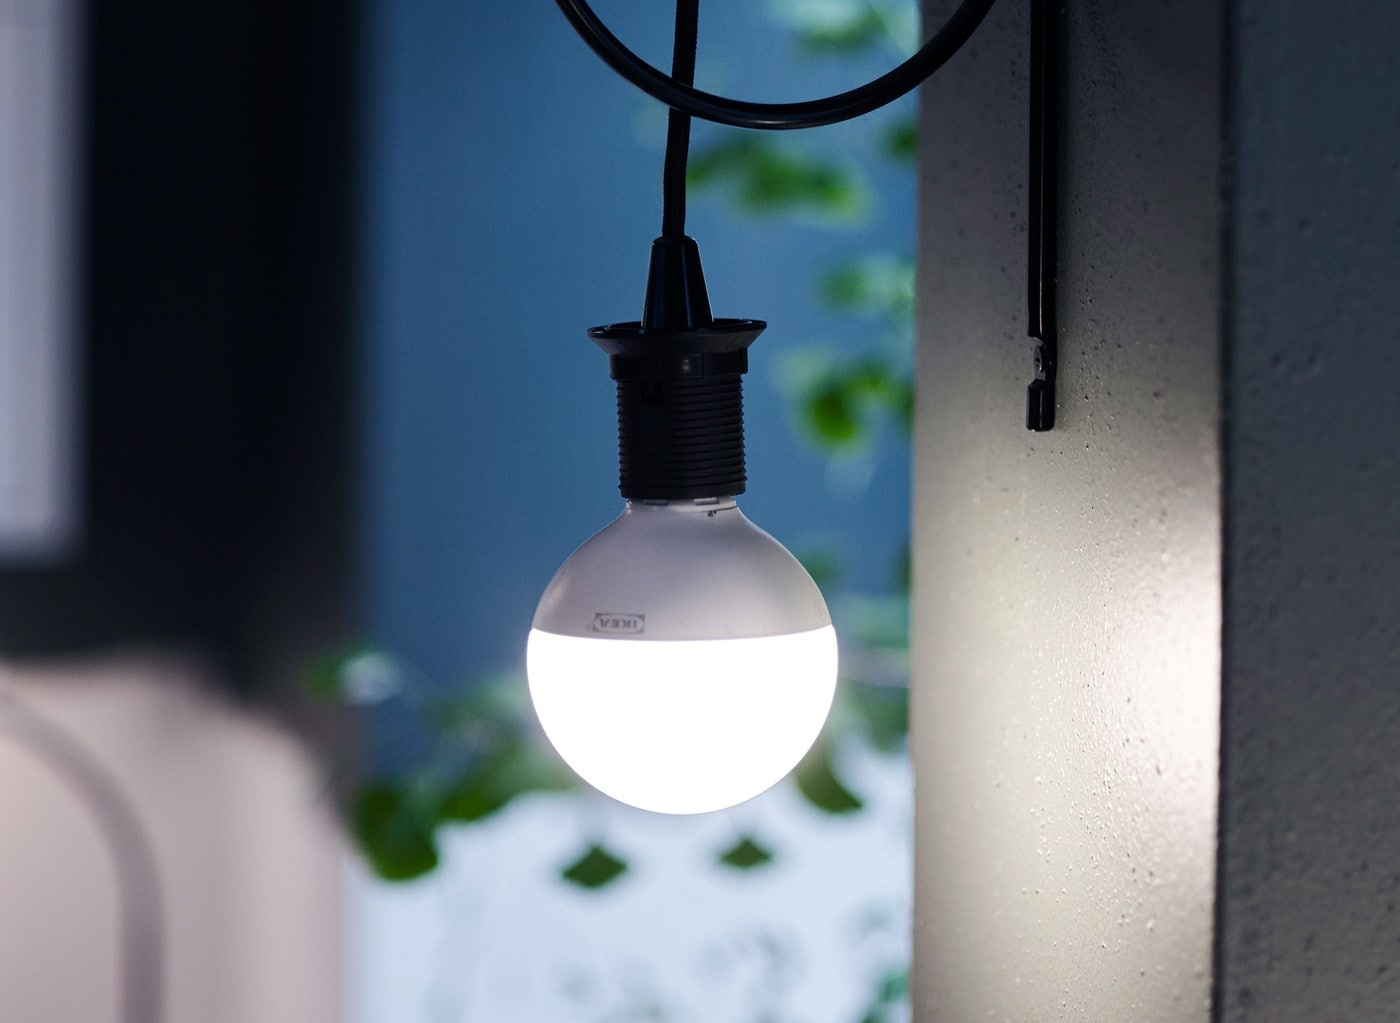 LED lightbulb hanging from a black cord against a dark blue wall.